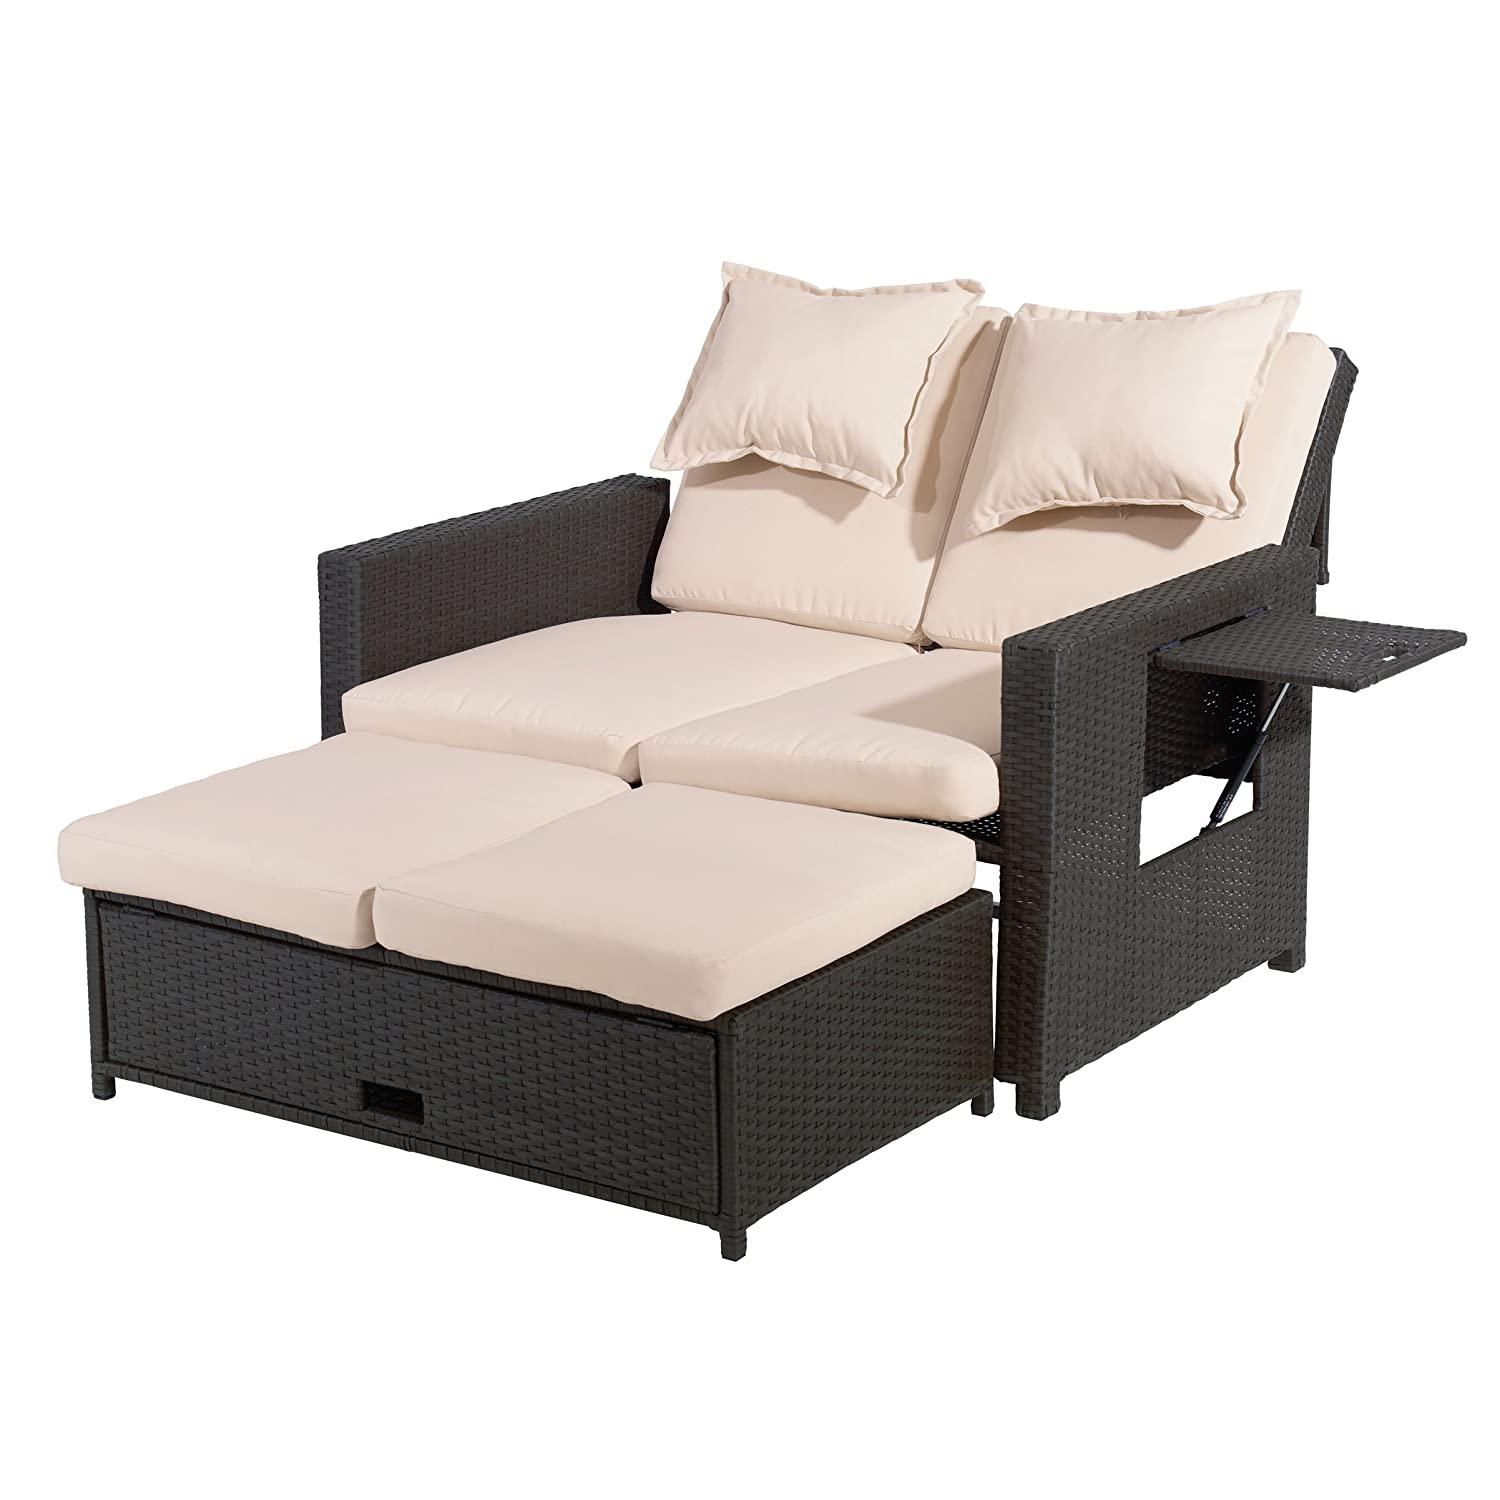 Amazon.de: greemotion 3-in-1 Rattan-Gartensofa Bahia in Braun ...